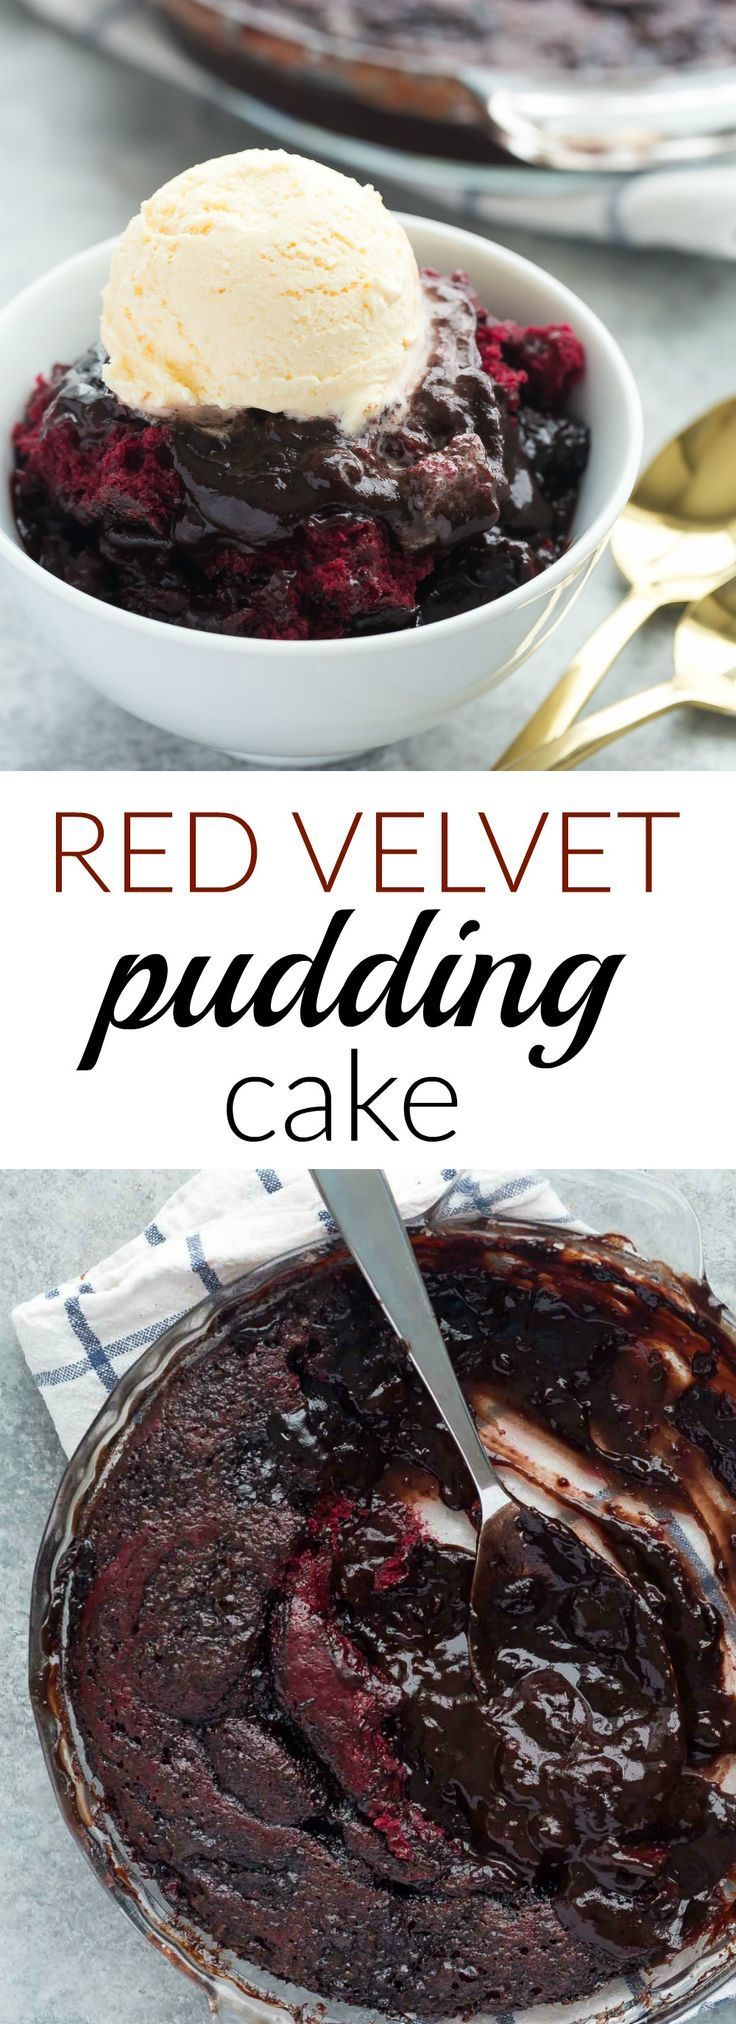 This RED VELVET Pudding Cake is so easy with only 10 minutes prep — it has a chocolate cake base and it makes its own hot fudge sauce in the oven as it bakes and I highly recommend slathering it with a scoop of ice cream! Includes a how-to recipe video.